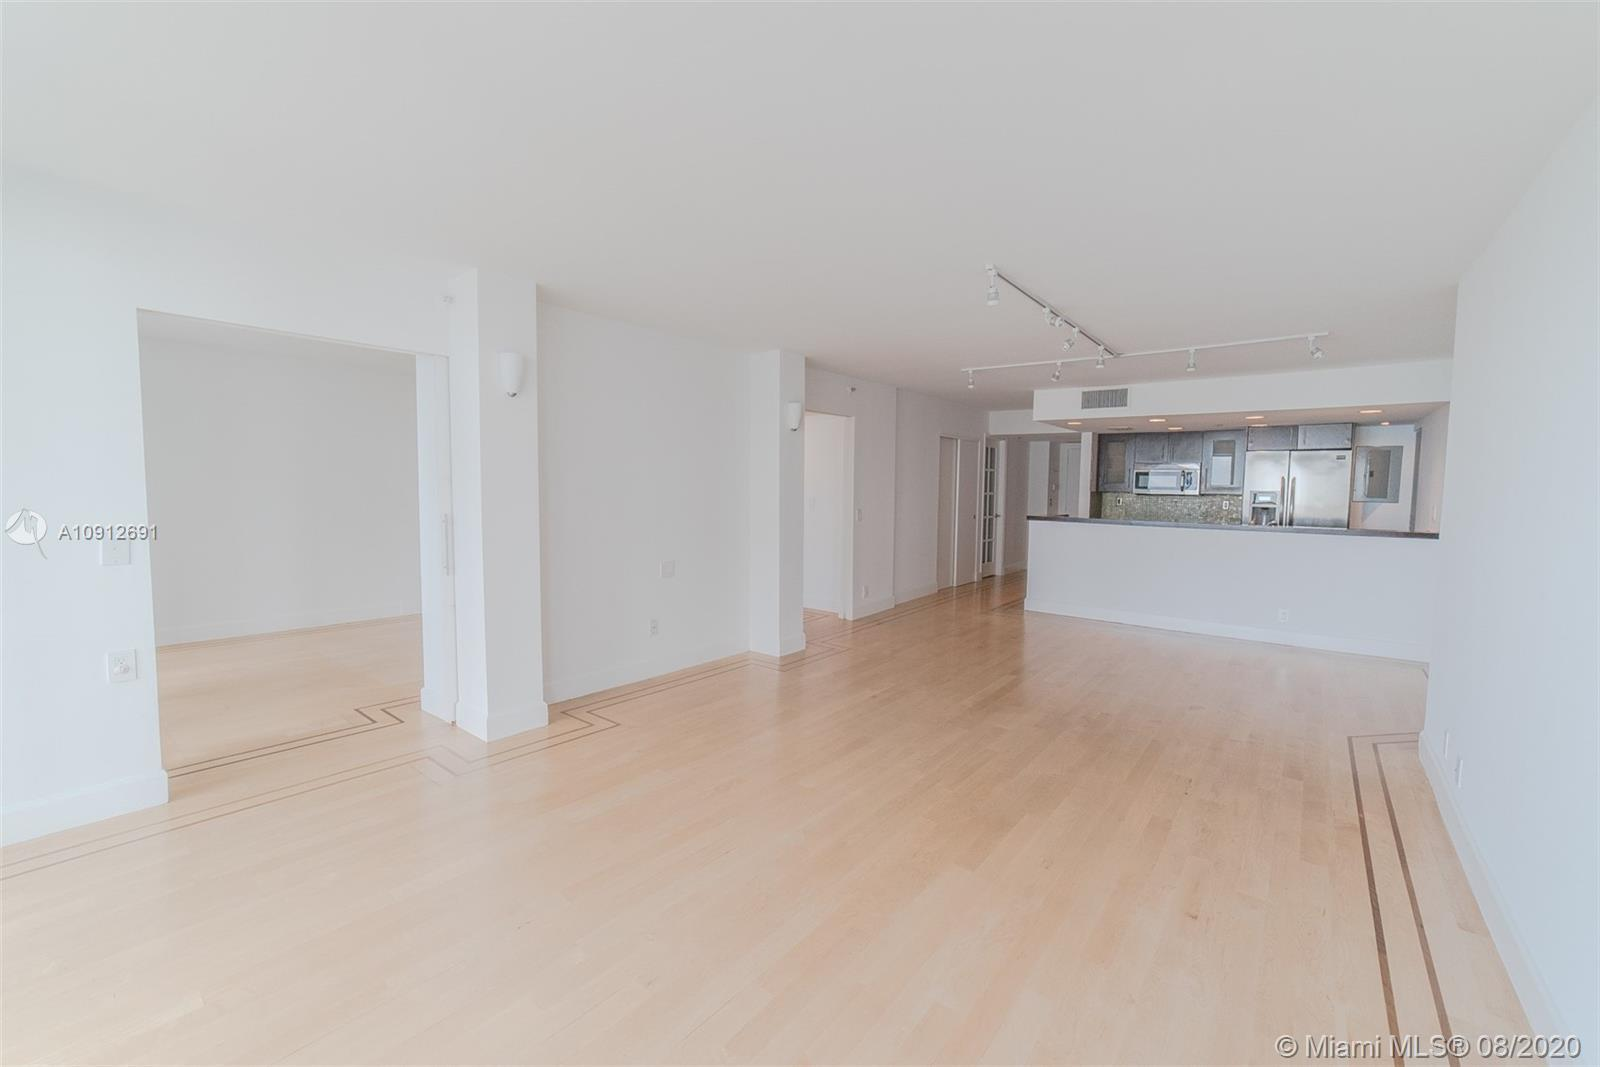 3 Bedroom/3 Bath Unit. Ample Floor Plan, New Appliances, large Balcony. Located at The Grand Buildin